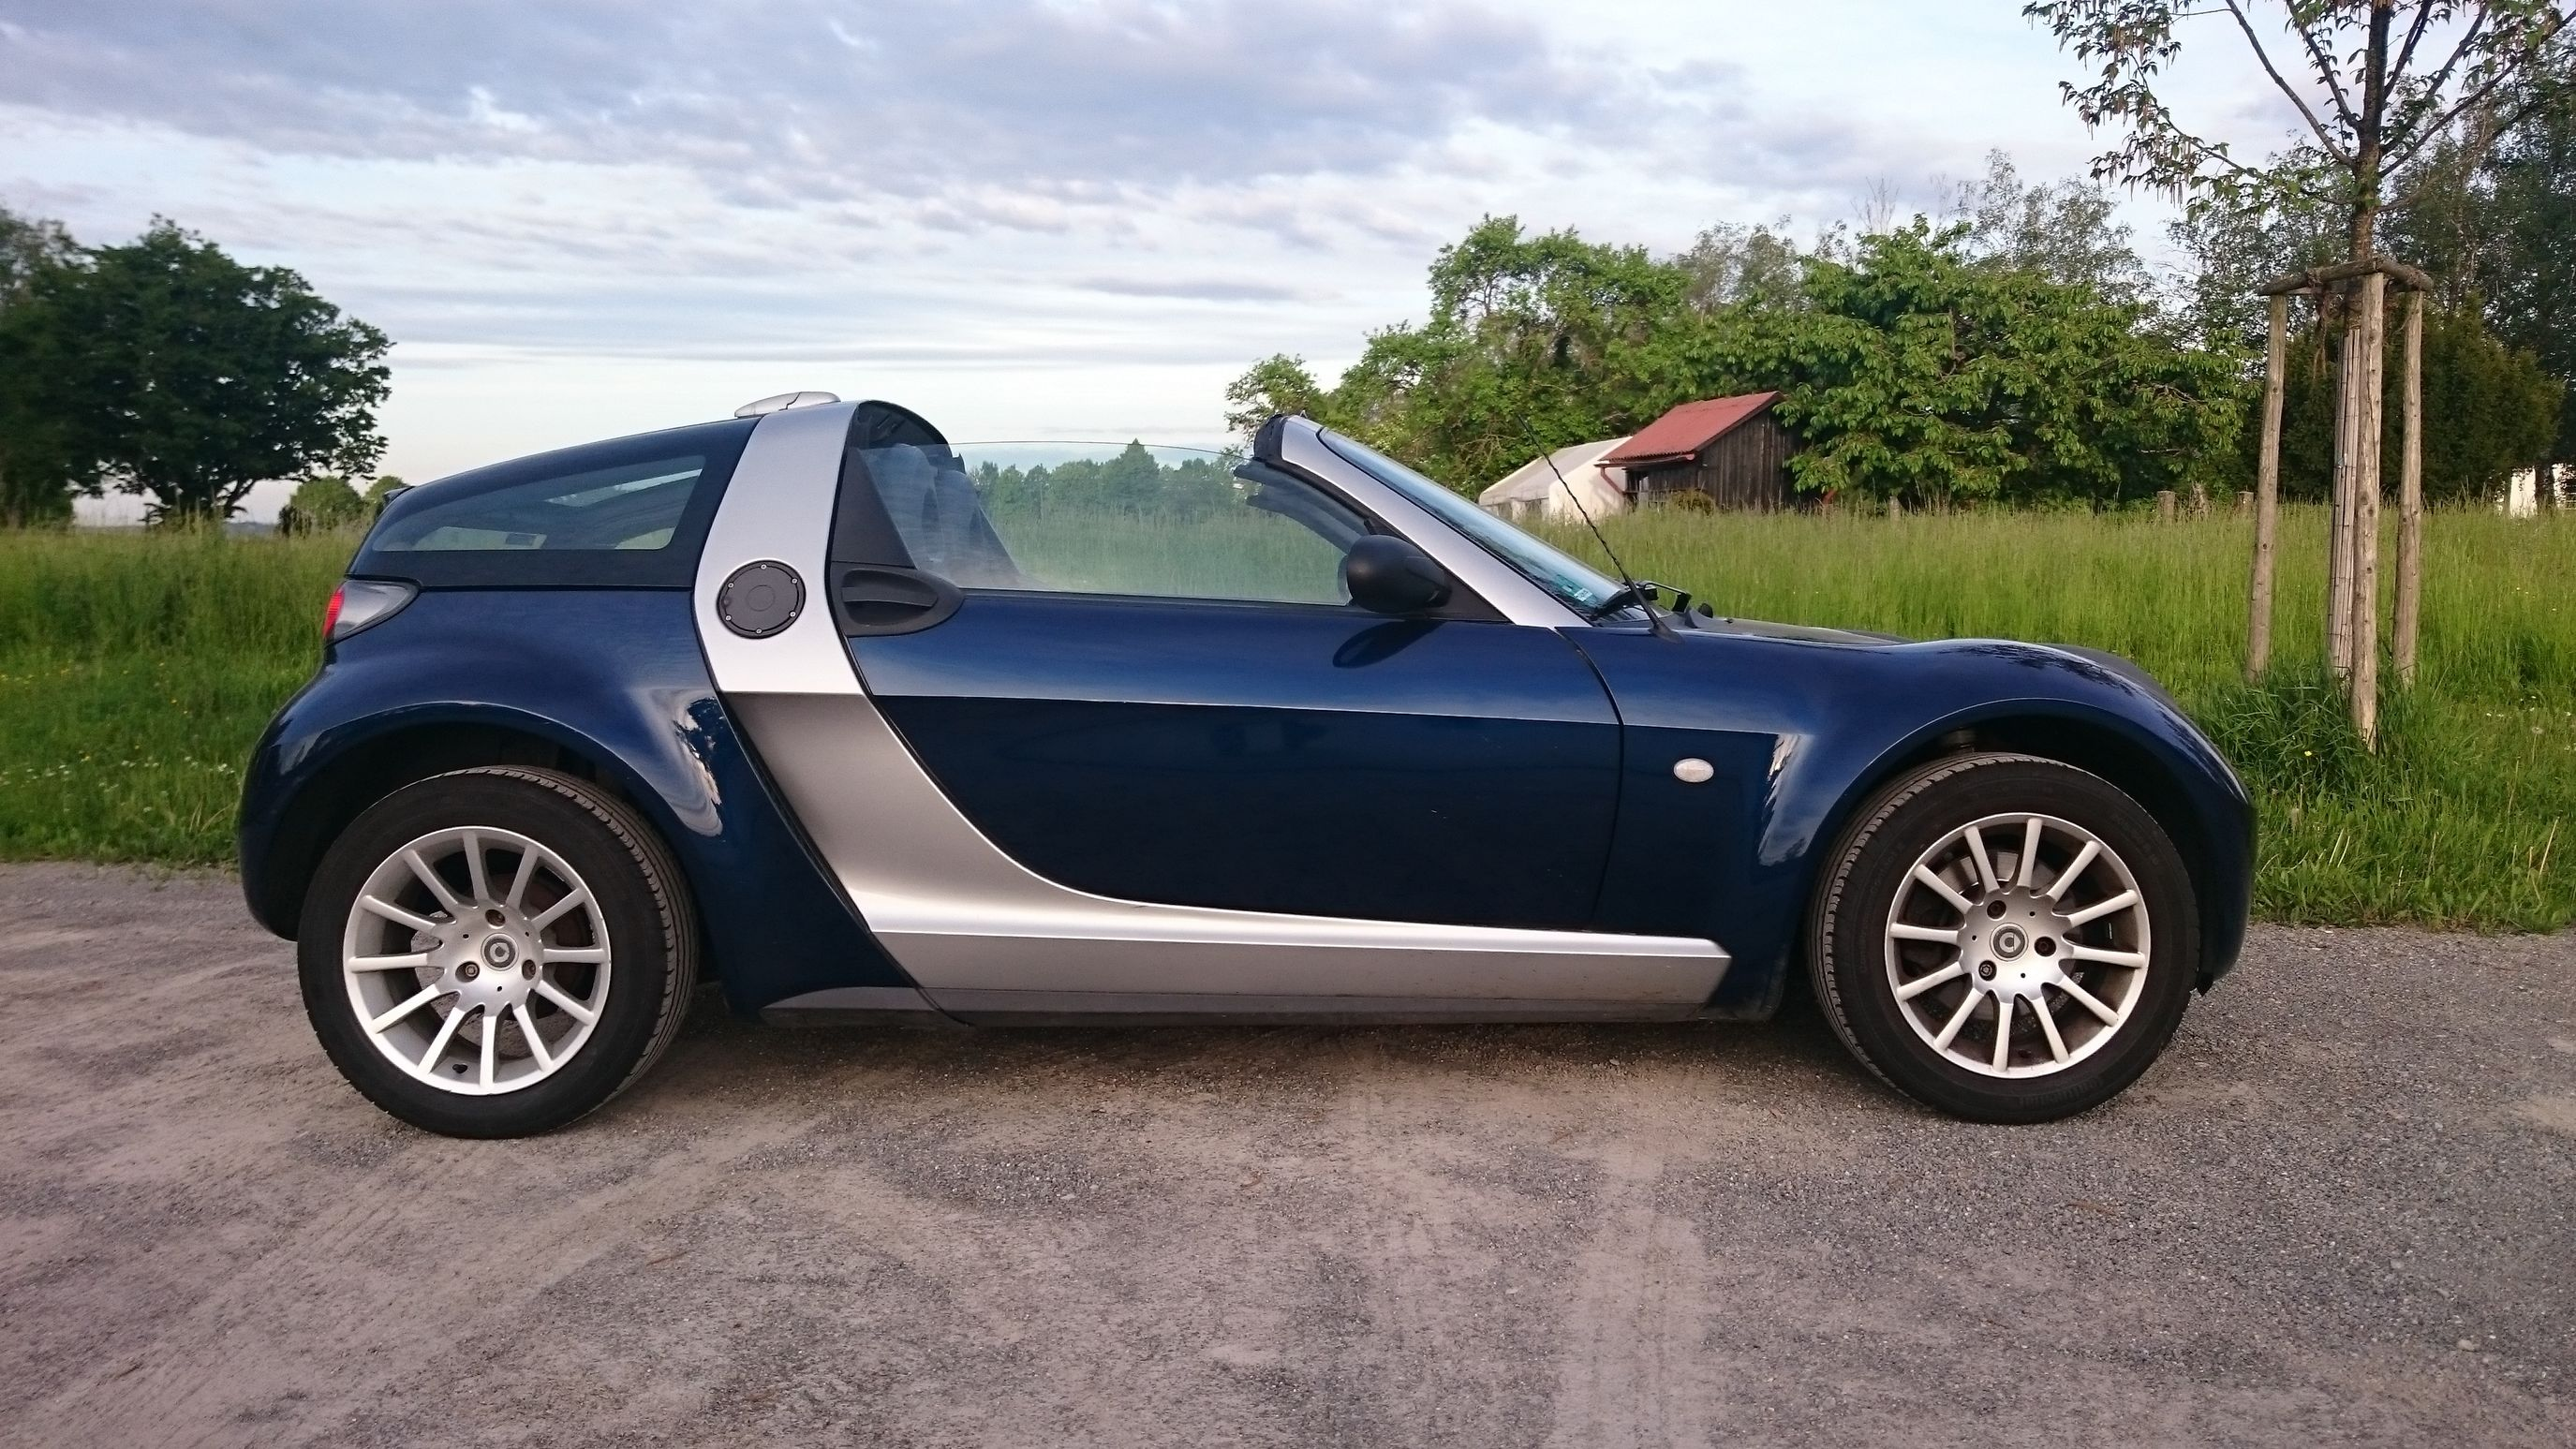 Finally - after 2 years - back on the road! What a feeling! Smart Smartroadster Smartroadstercoupè Love 452 Smartcar EndlessLove